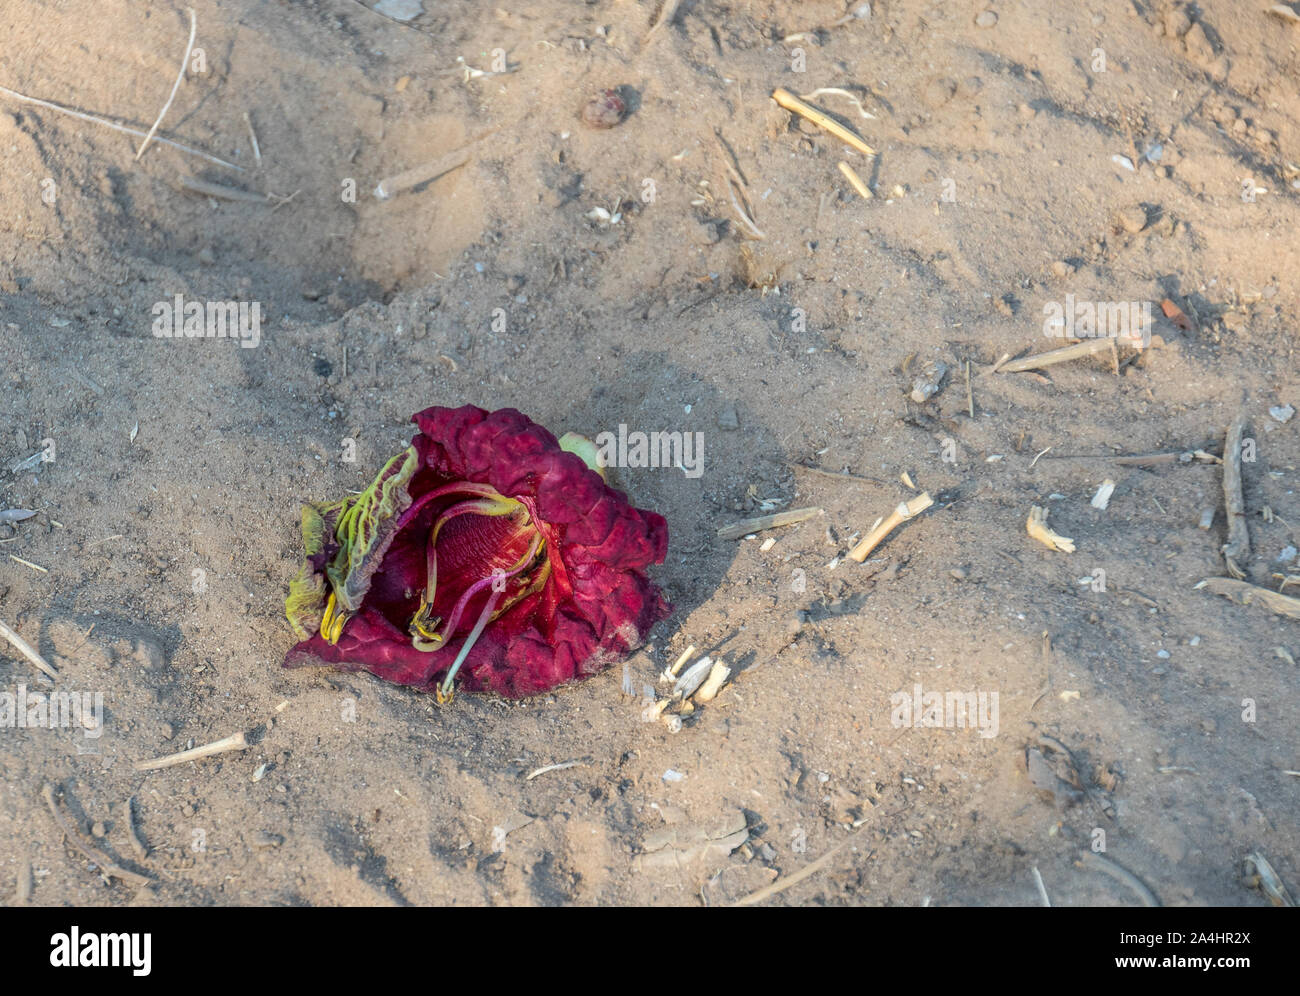 The dying deep red flower of a sausage tree isolated on the dry sand image with copy space Stock Photo